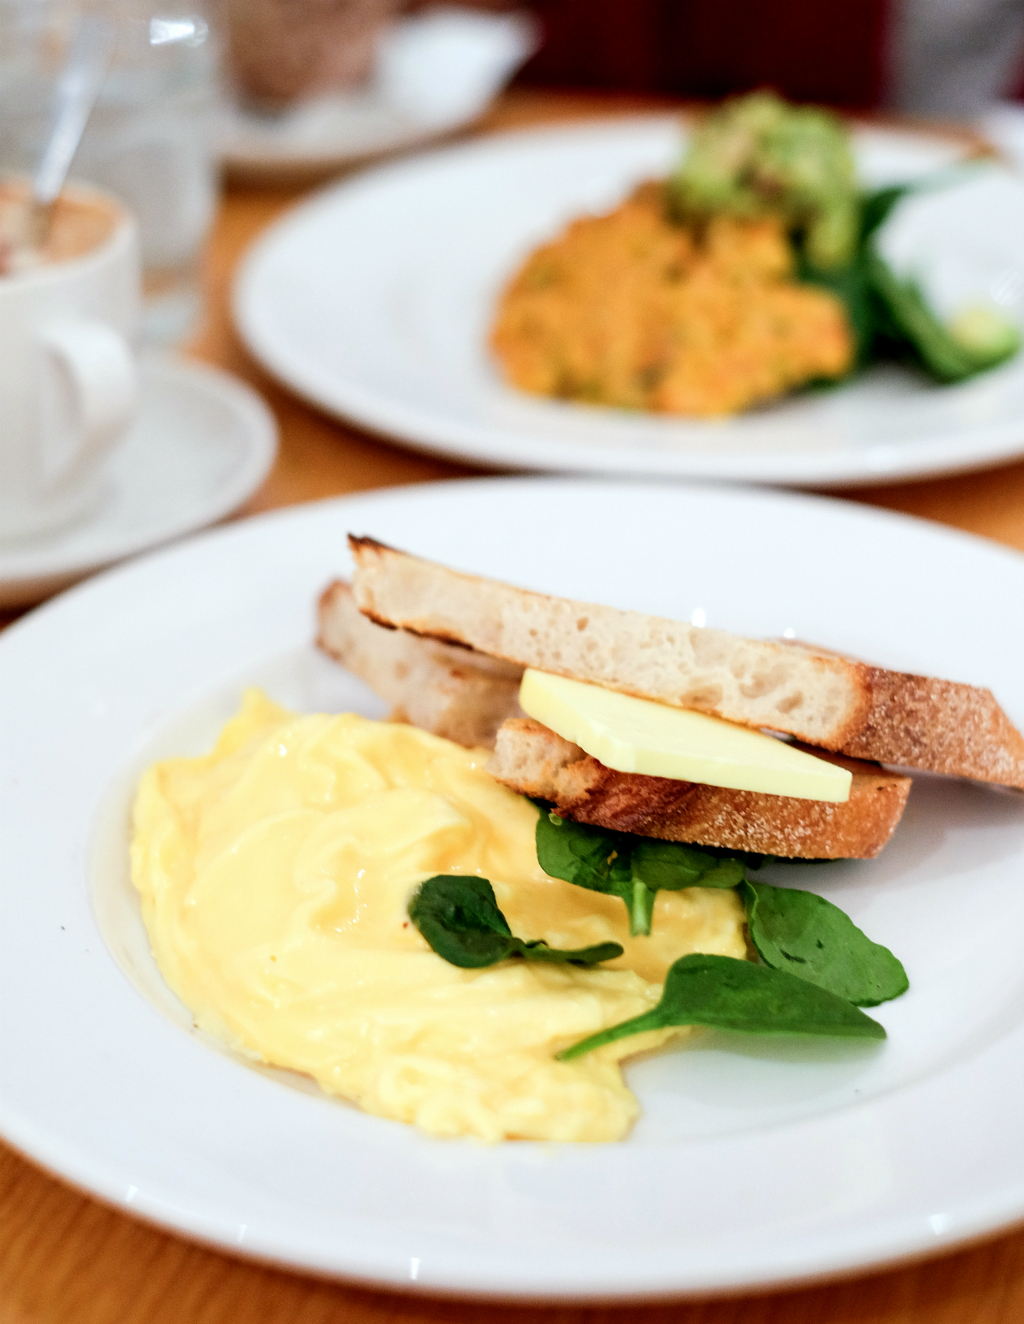 Bills Restaurant @ Darlinghurst: The best scrambled eggs in the world